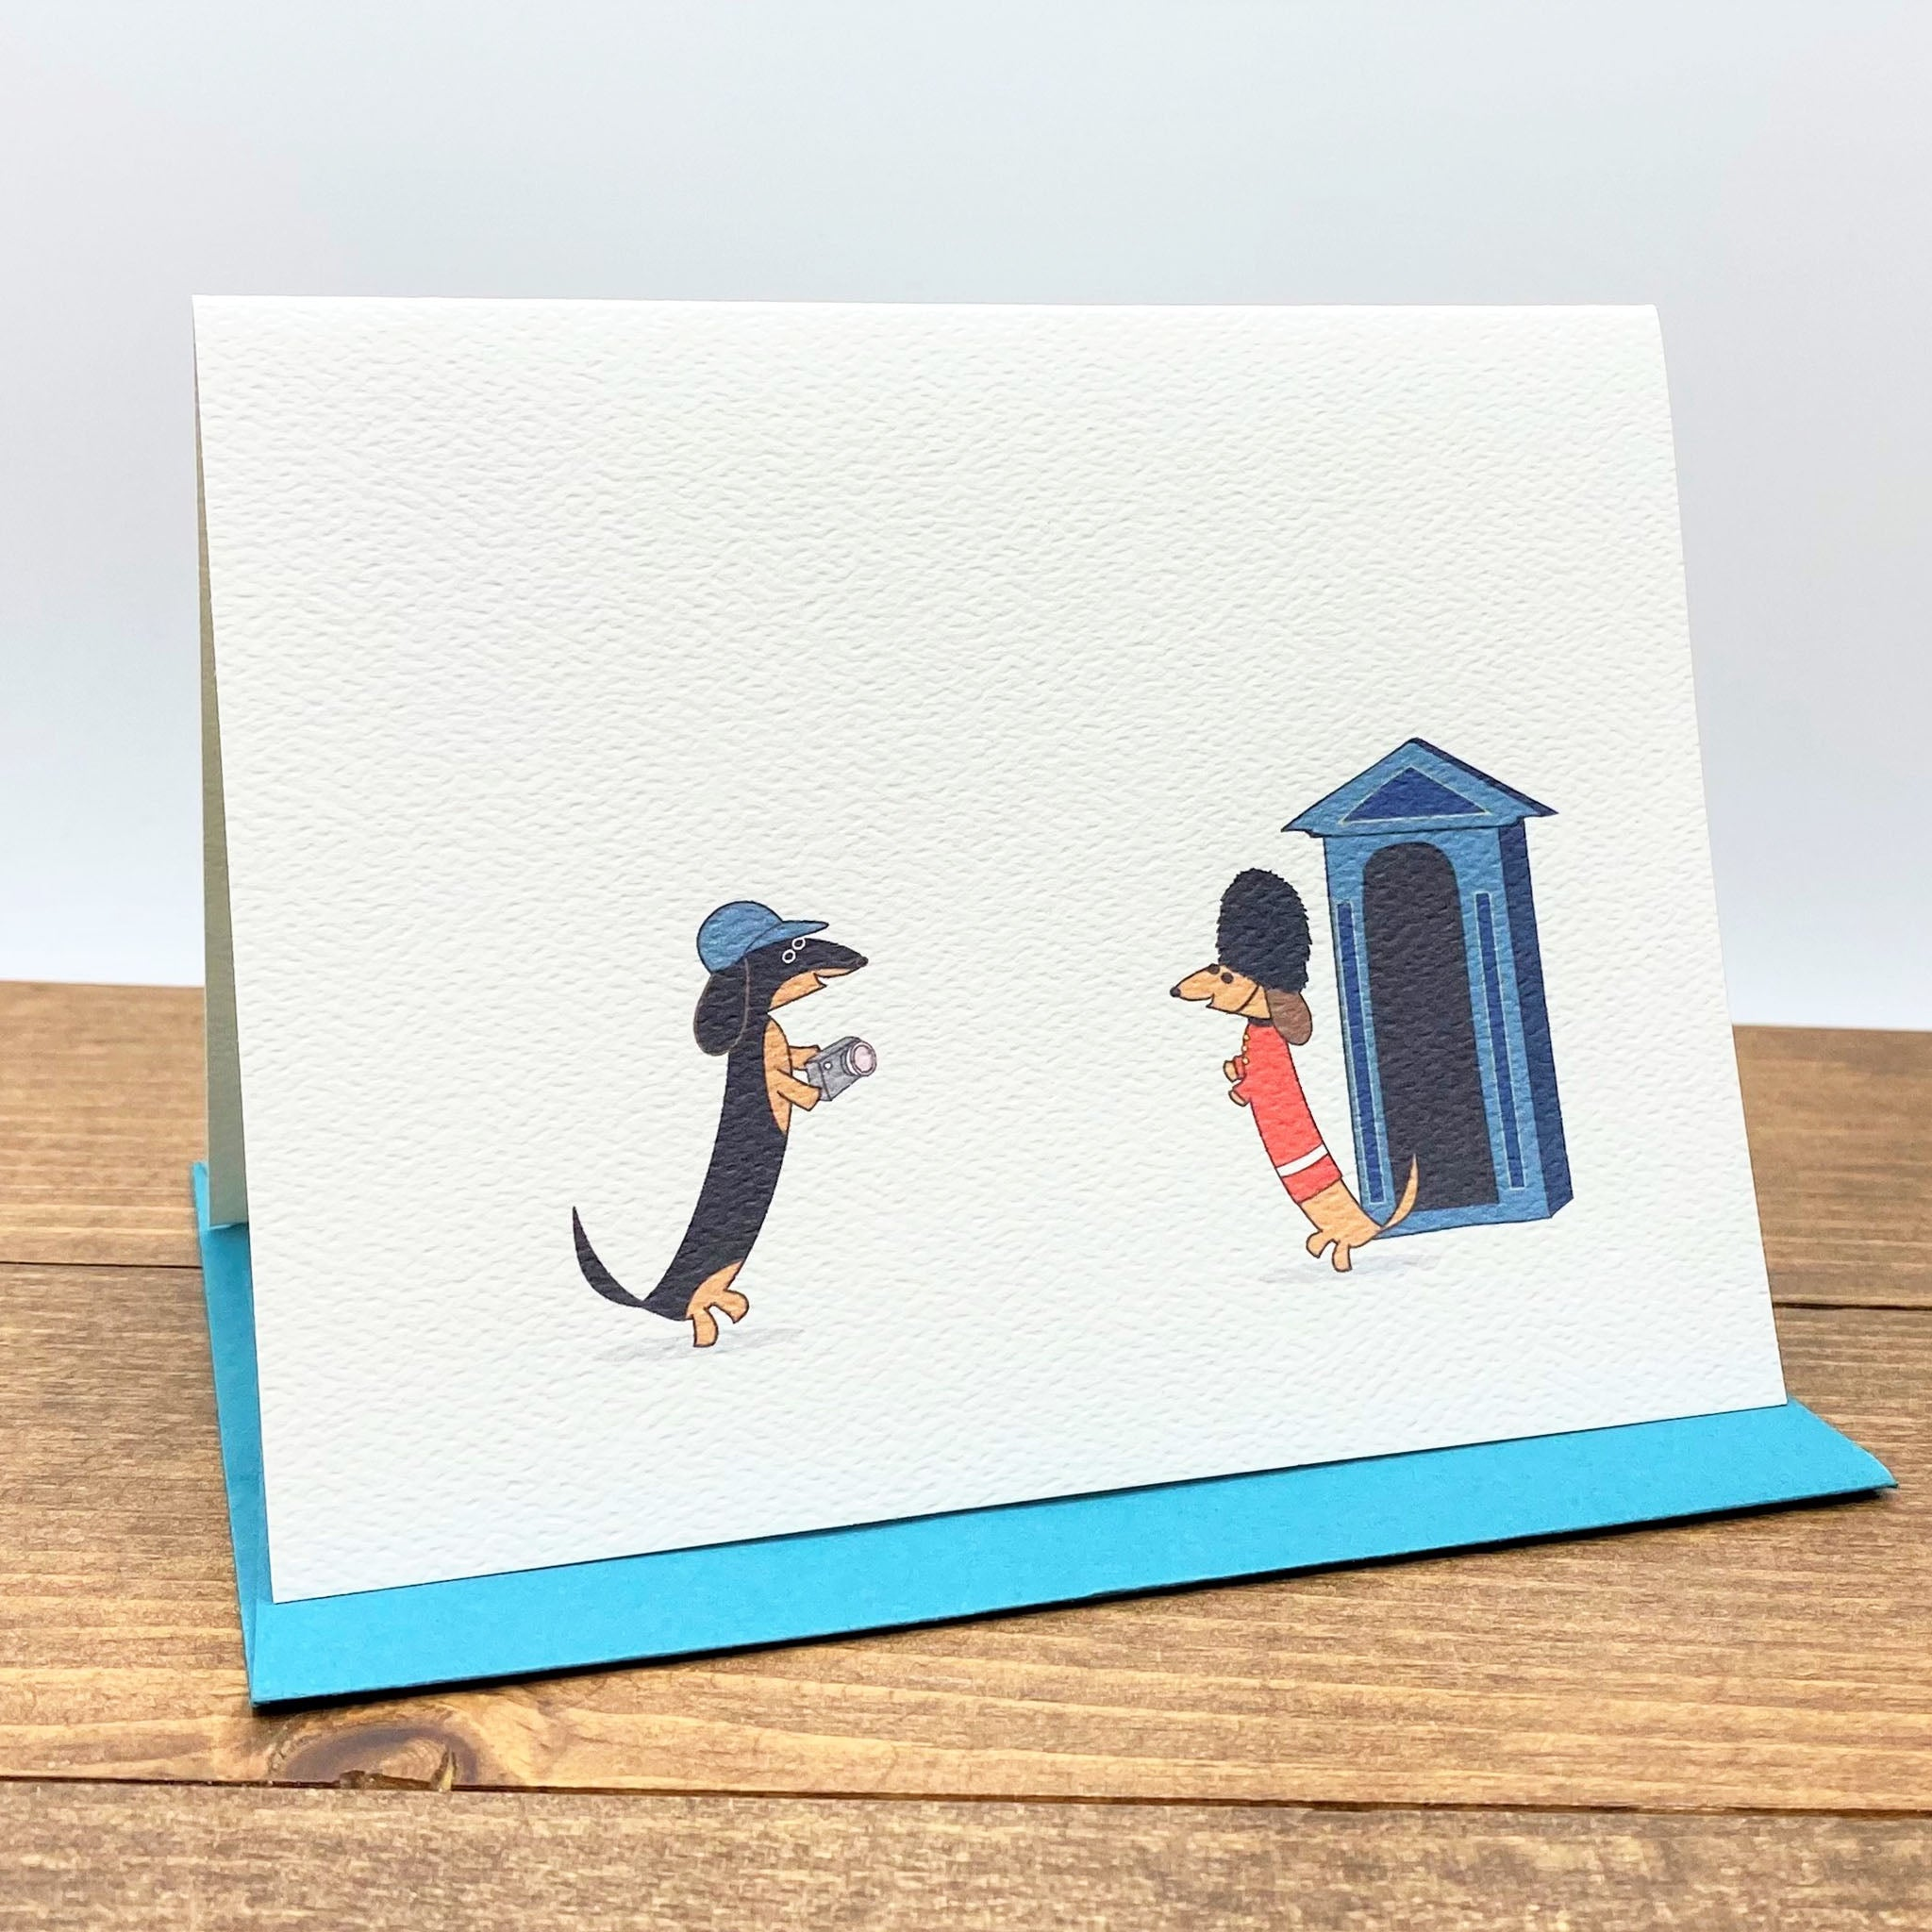 Dachshunds in London note cards featuring one dachshund dressed as tourist and the other as Queen's guard.